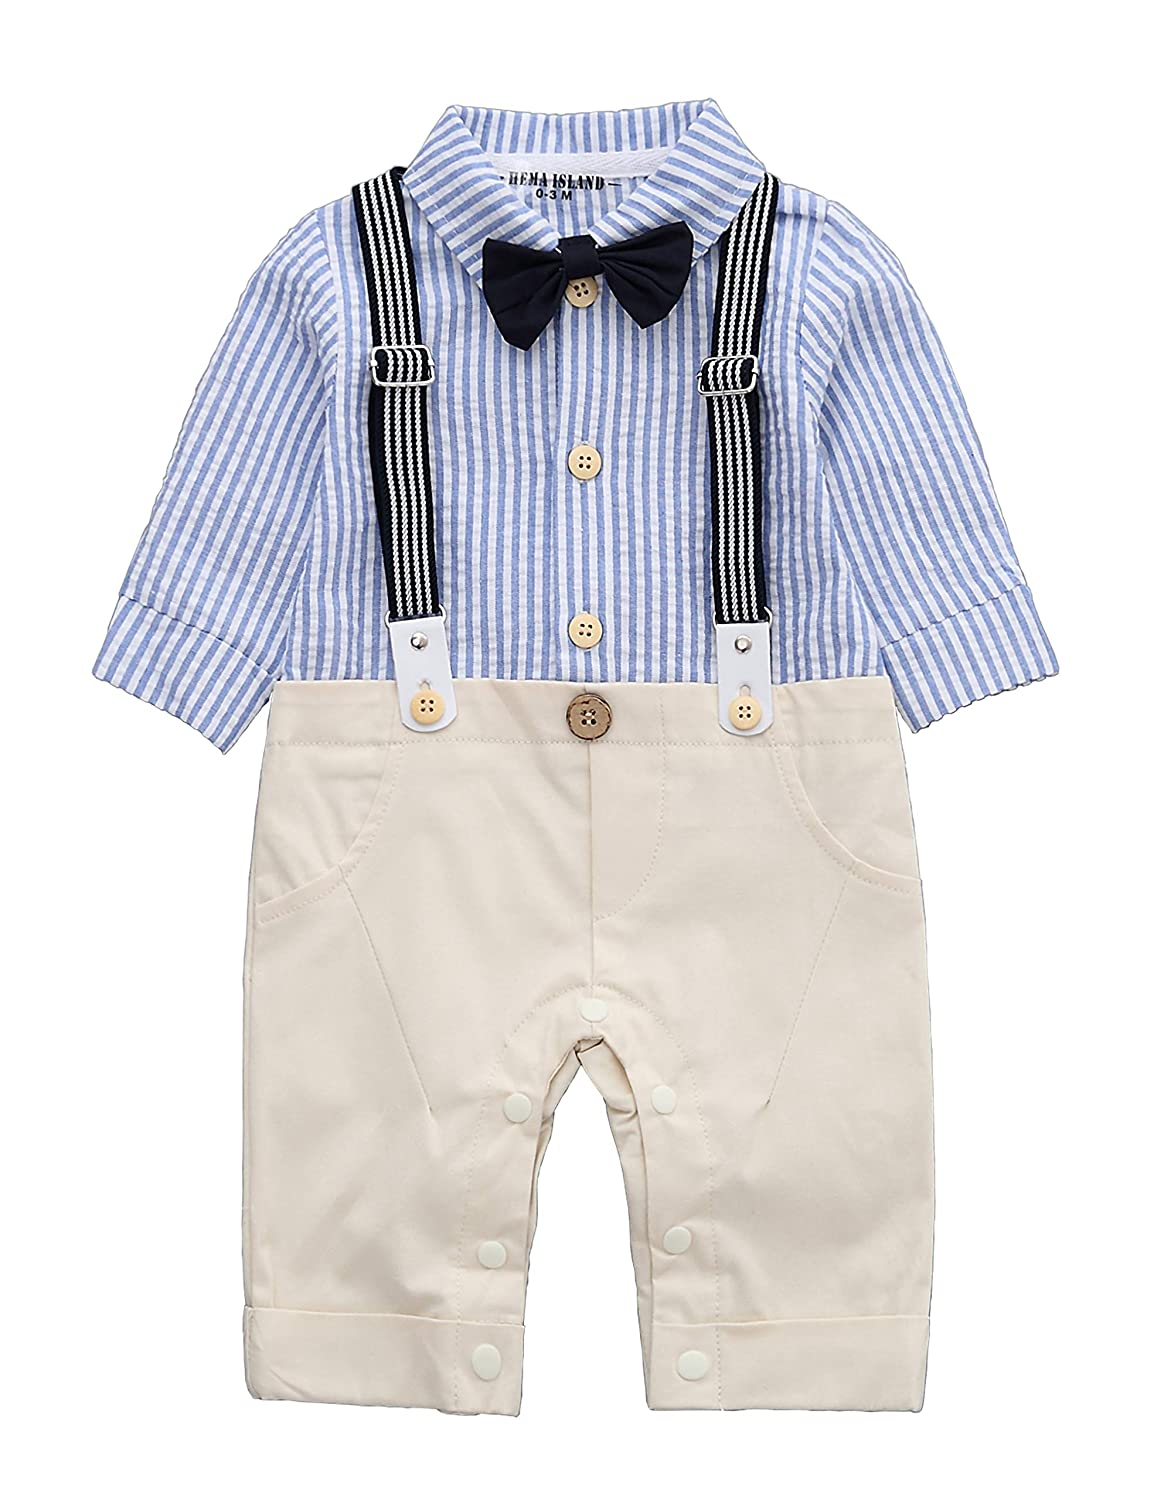 98faaa8ce HMD Baby Boy Gentleman Blue Stripe Shirt Bowtie Tuxedo Onesie Jumpsuit  Overall Romper(0-18M) Be made of high quality cotton, it\'s super soft and  ...